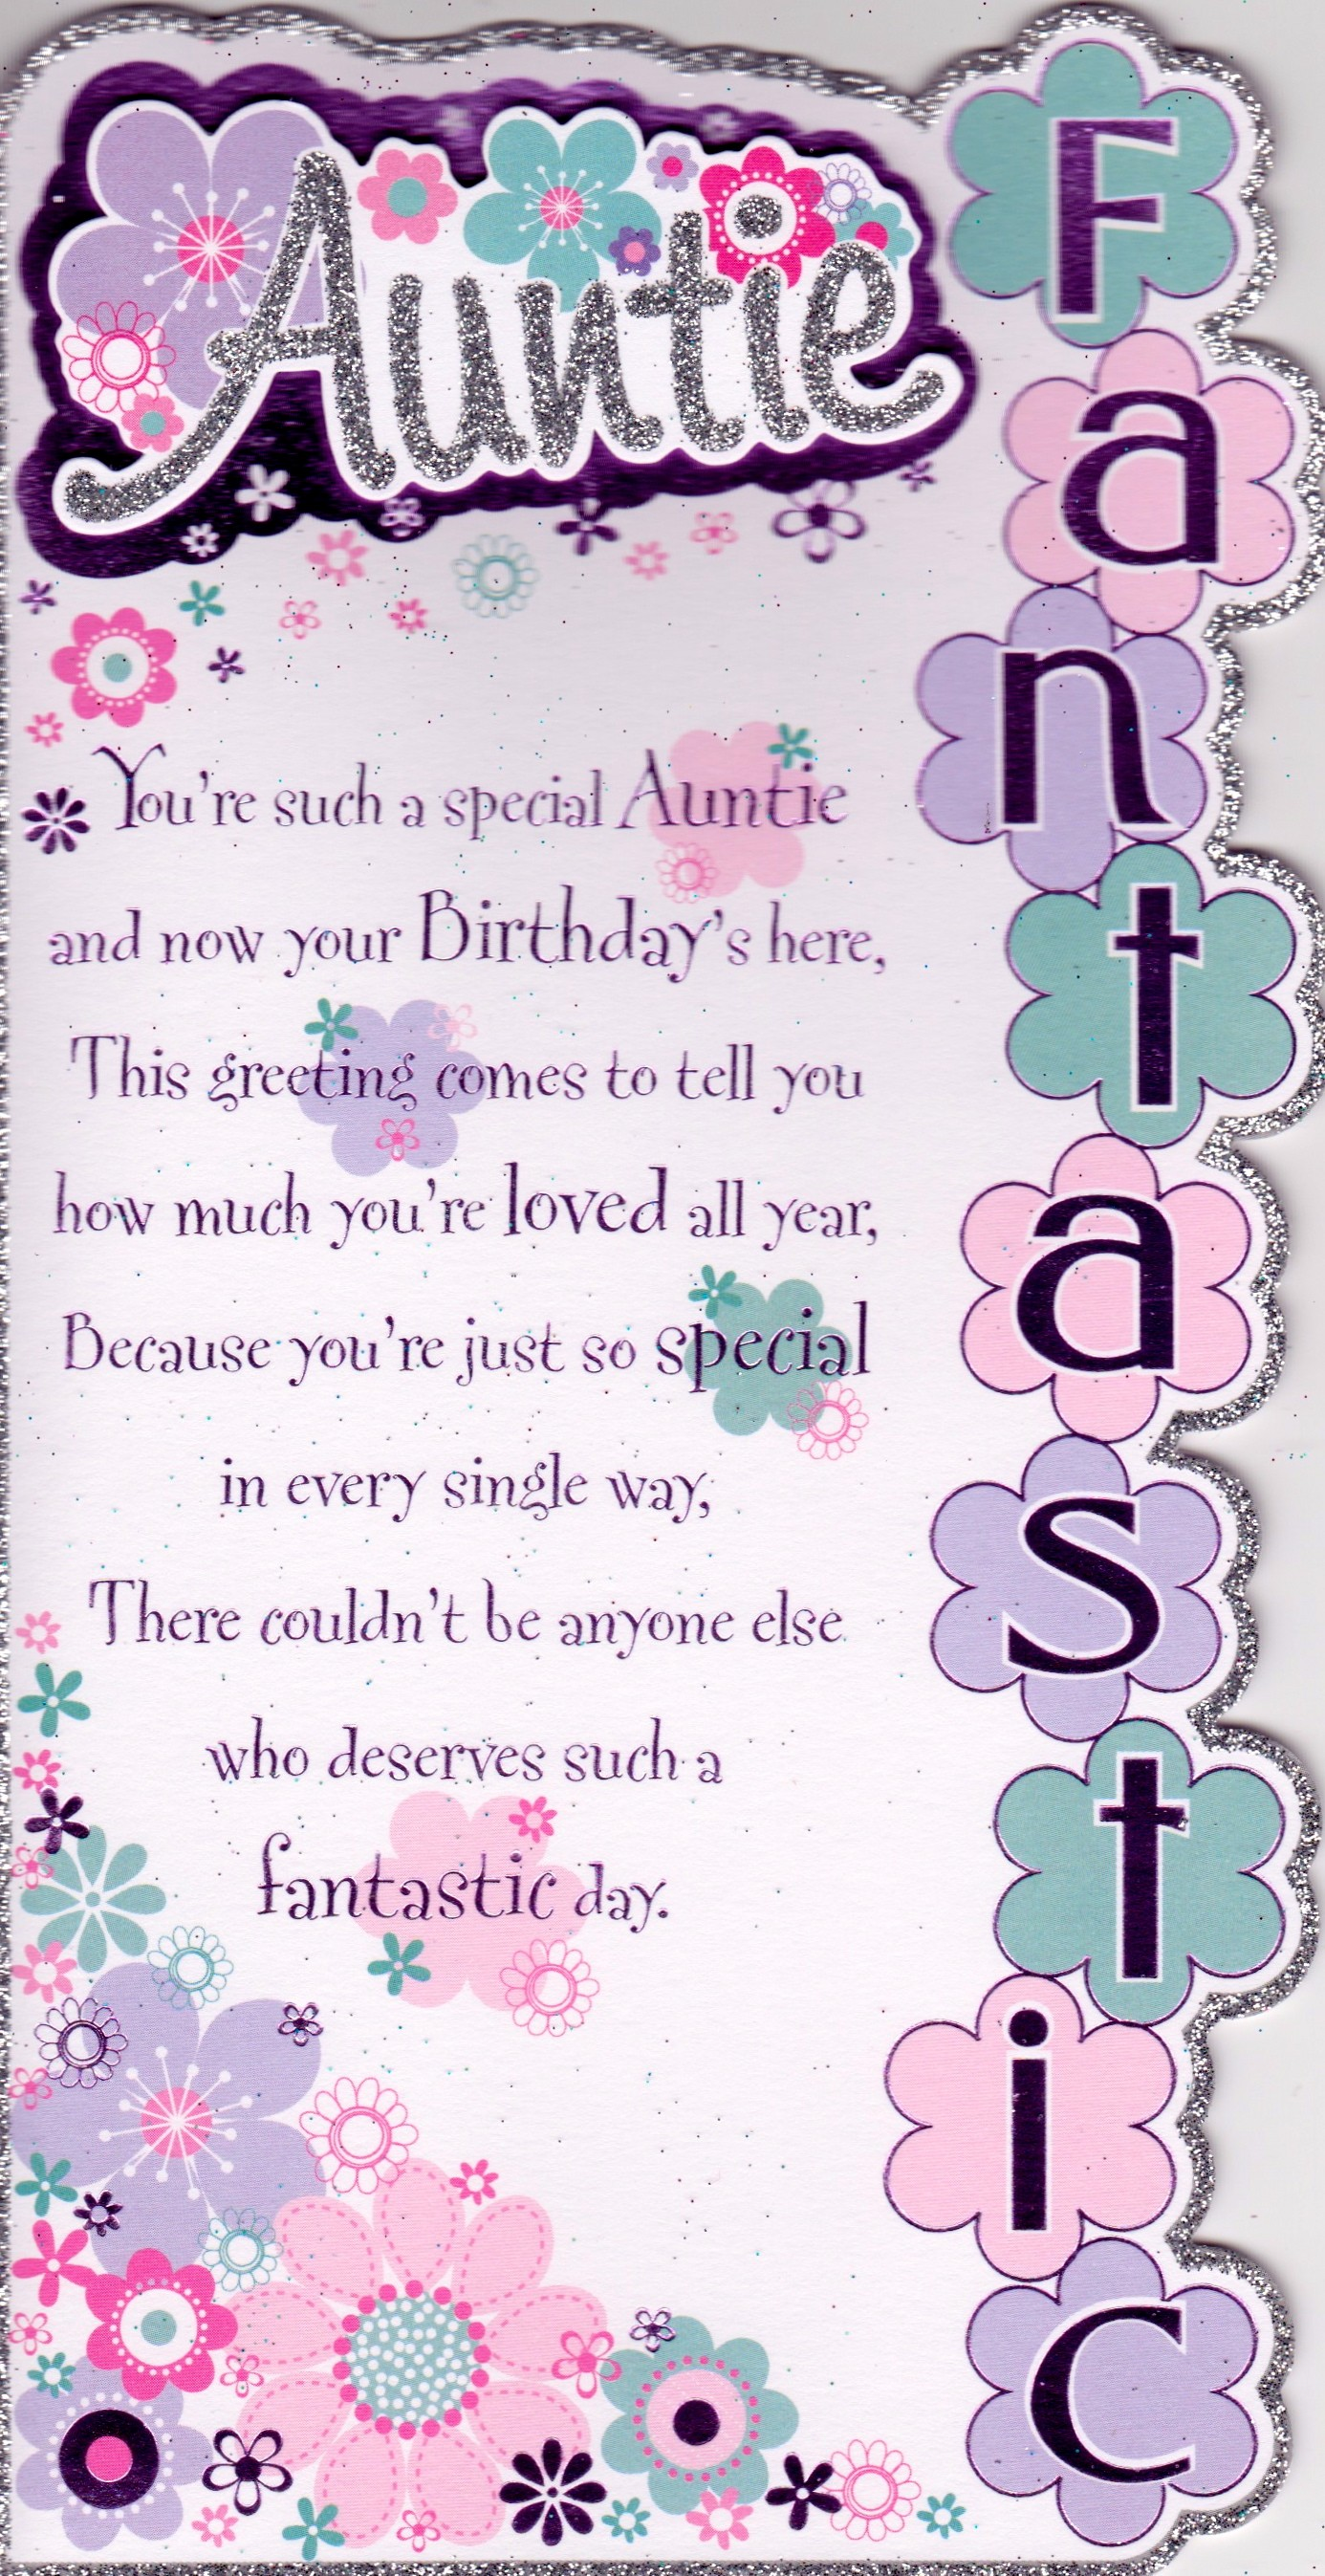 birthday message for aunty images ; birthday-wishes-for-auntie-cute-7-impressive-birthday-wishes-for-aunty-plan-of-birthday-wishes-for-auntie